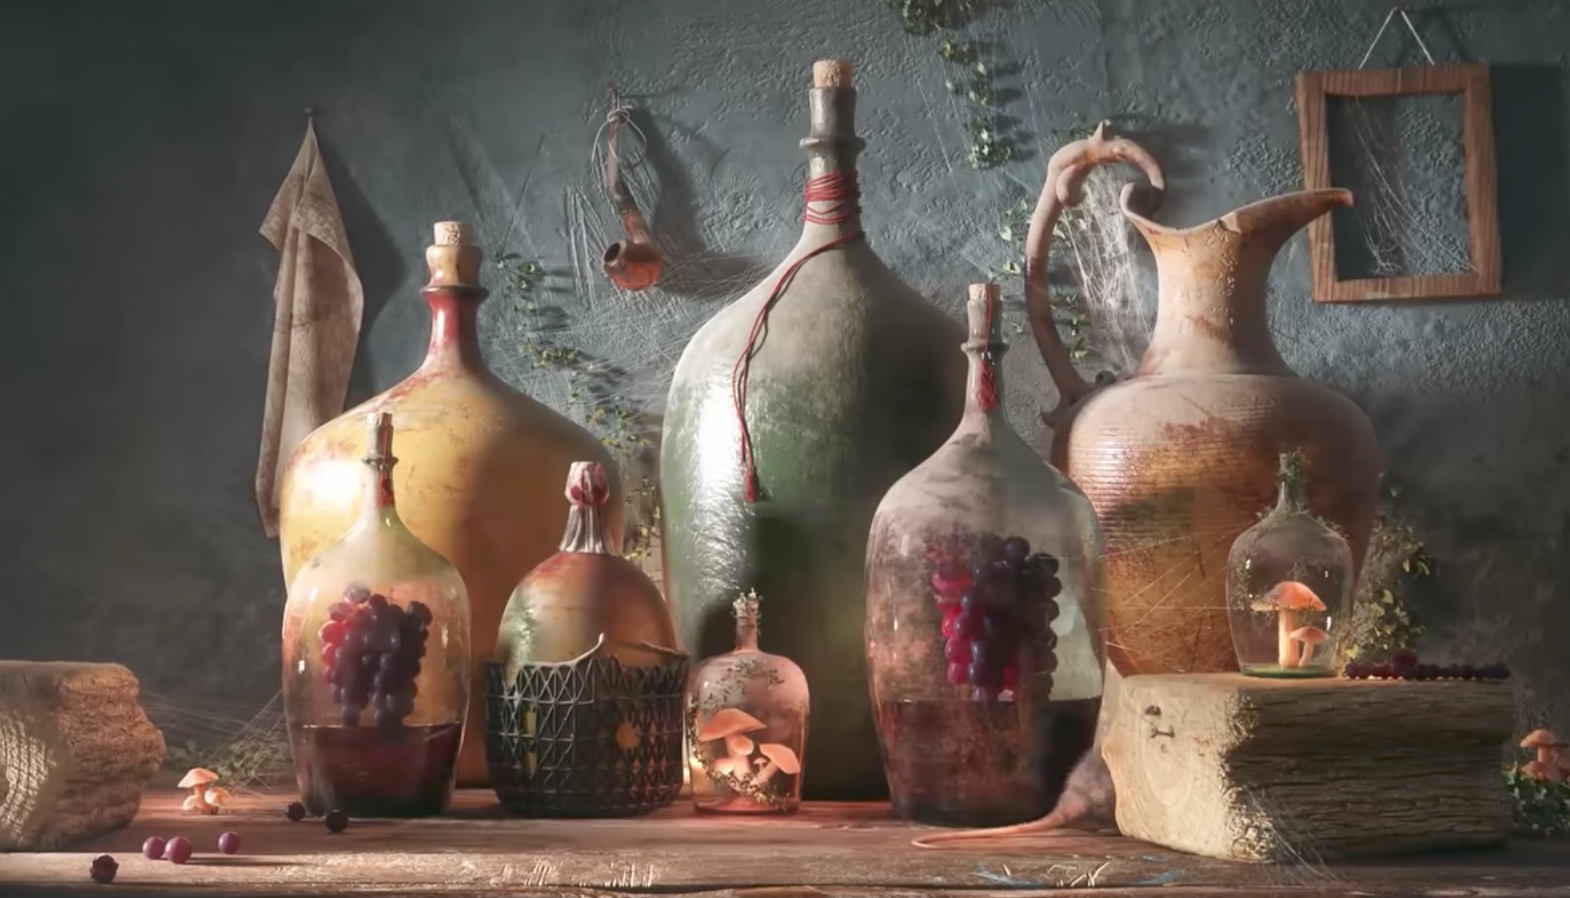 """Bottles of life"" by Farid Ghanbari – Making of"